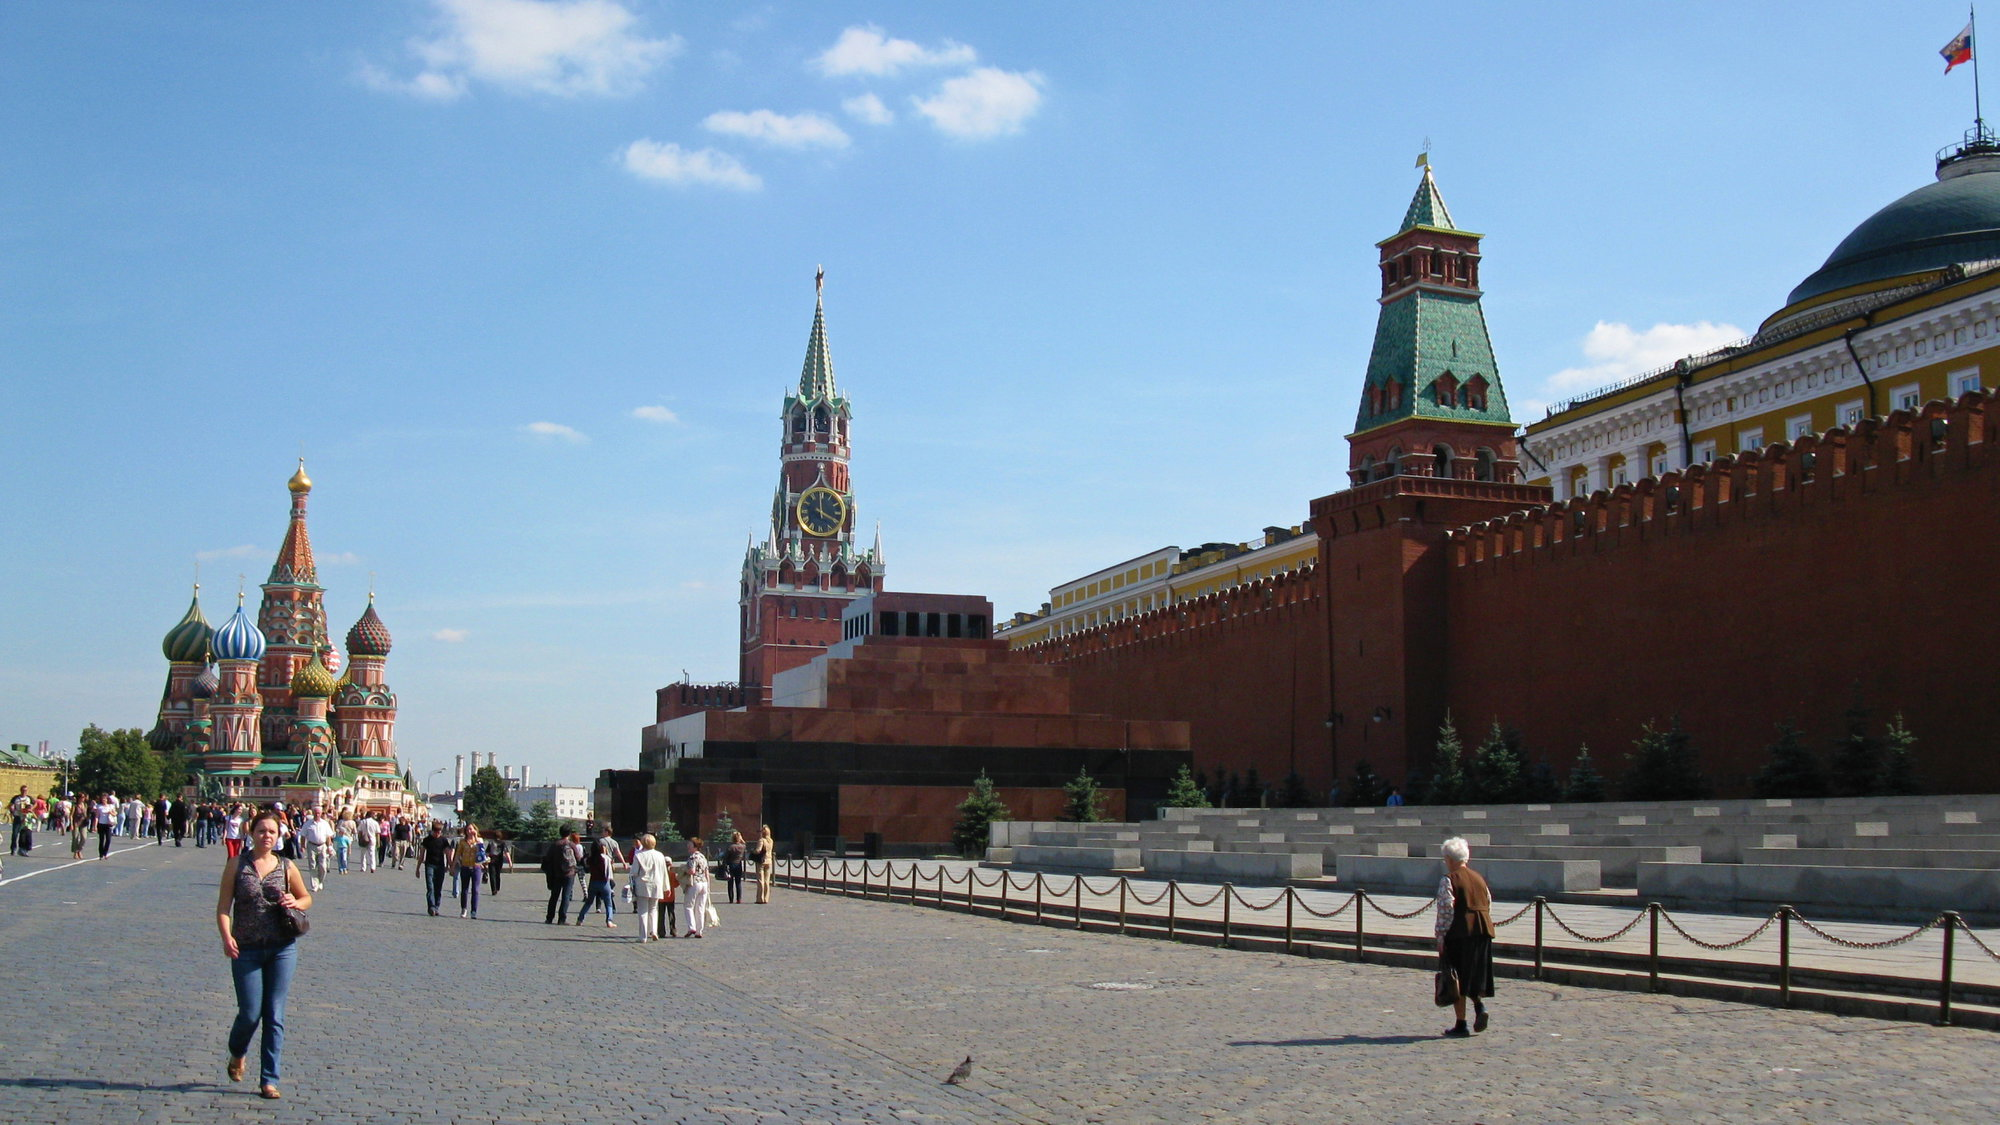 the mausoleum blends with the wall of Kremlin